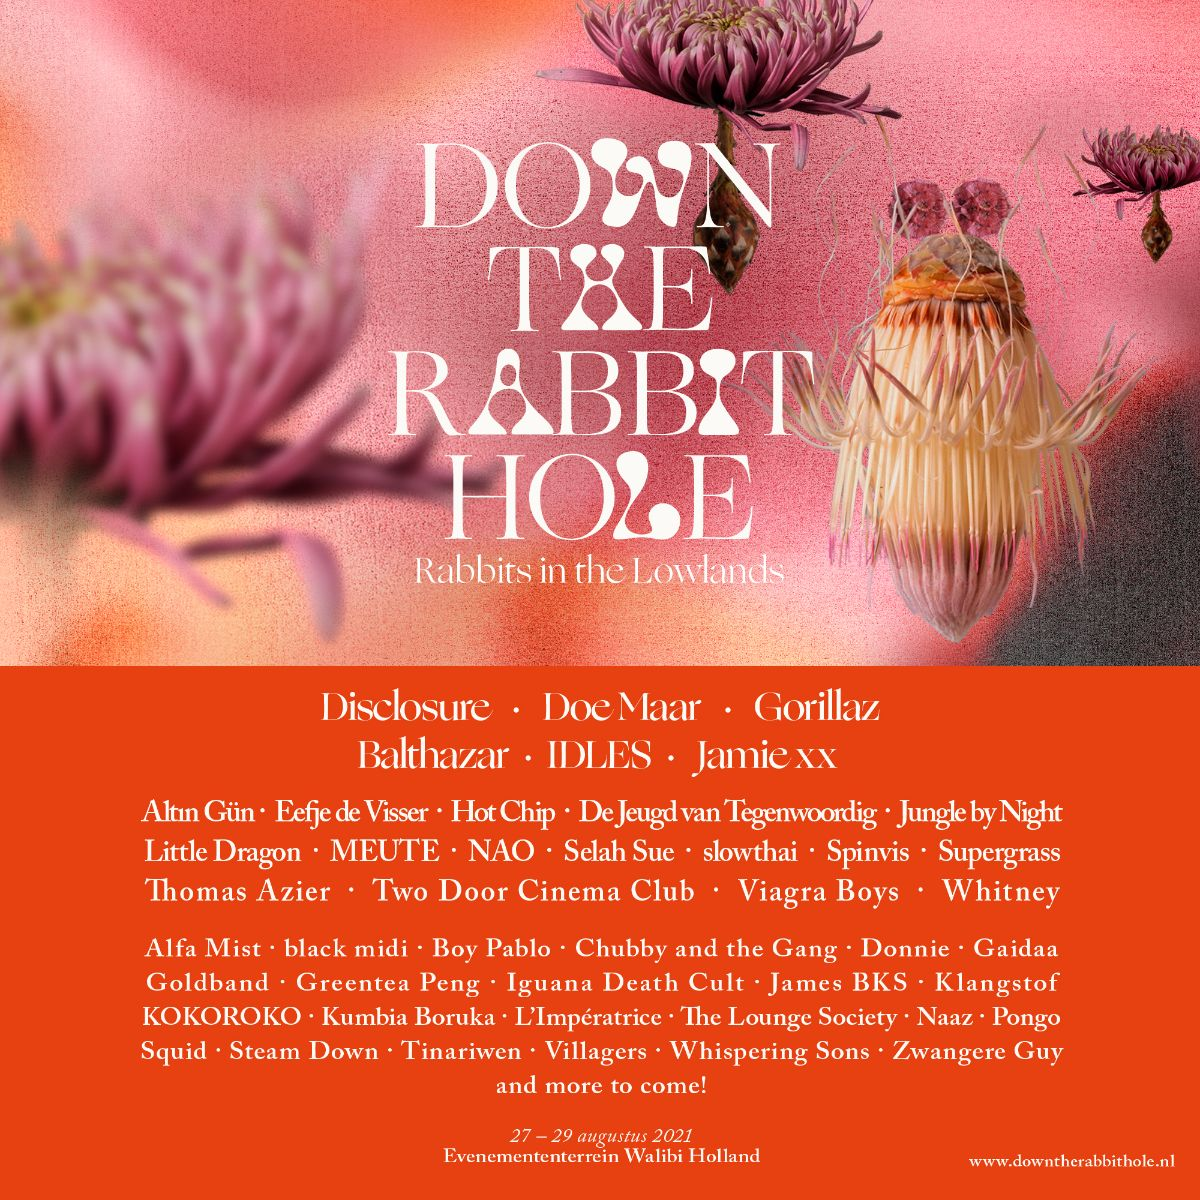 Down The Rabbit Hole - Rabbits in the Lowlands: New names 2